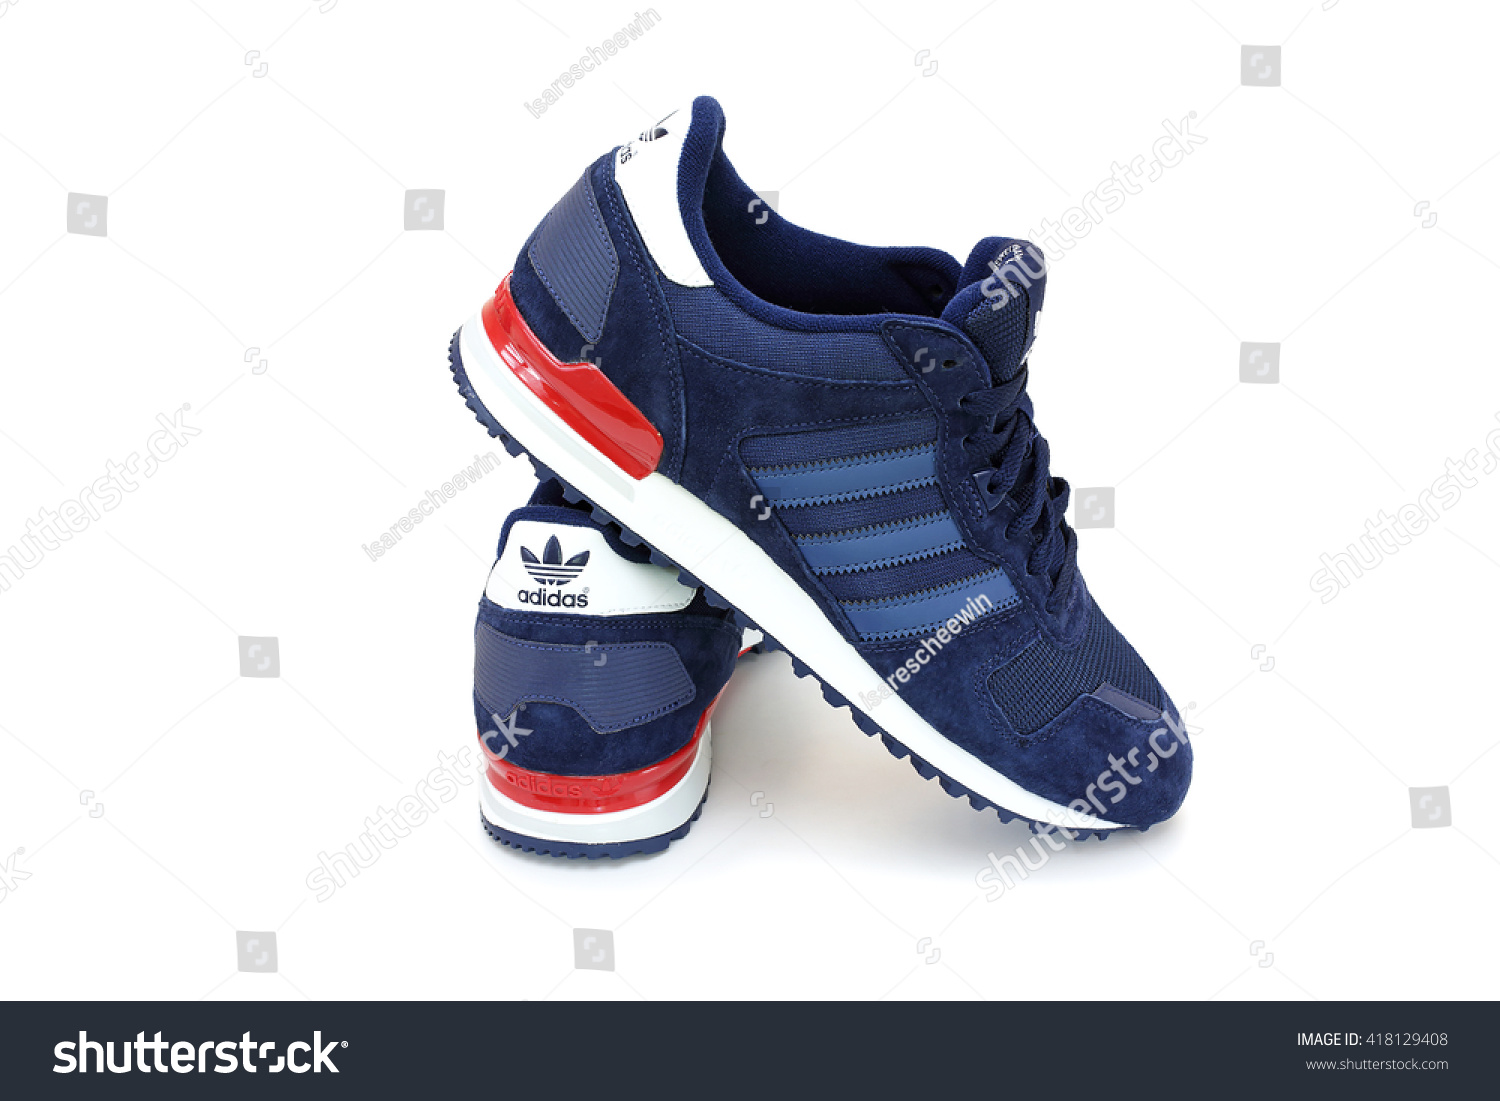 CHANTHABURI, THAILAND - MAY 1: Adidas ZX 700 shoes pair with isolated on  white